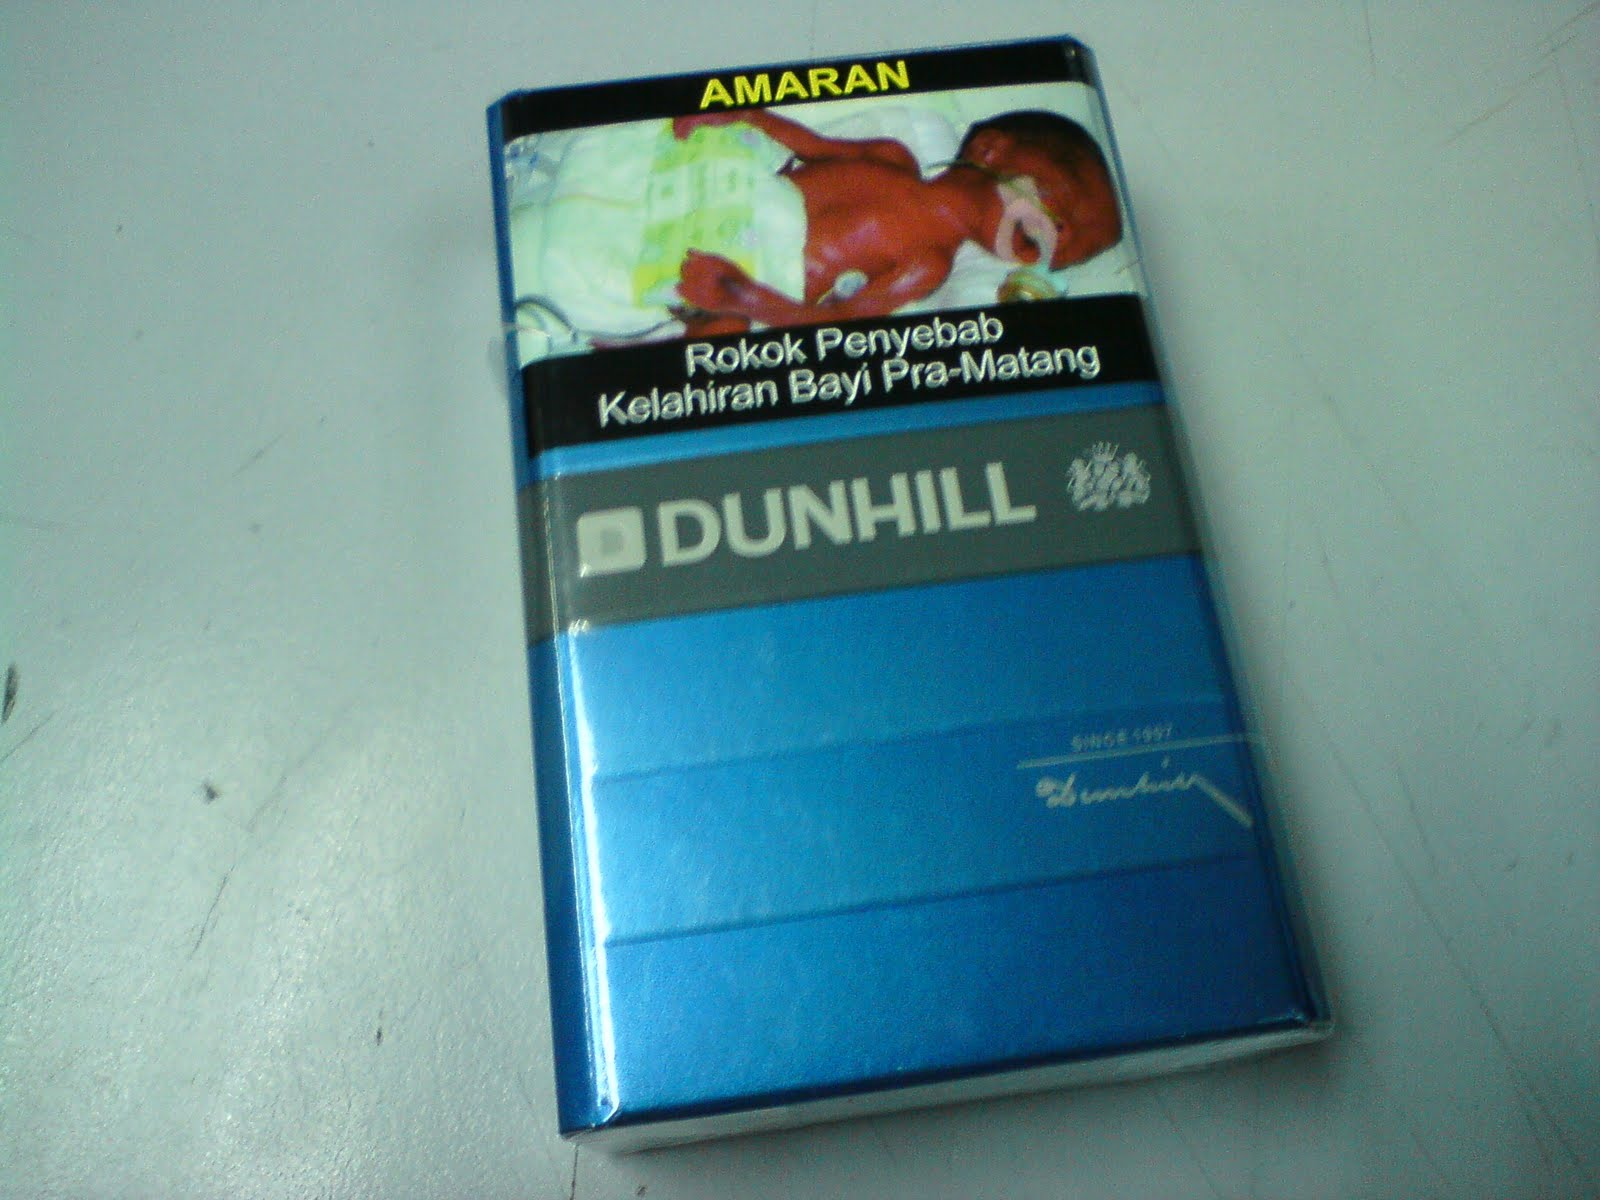 Houston duty free cigarettes Dunhill price